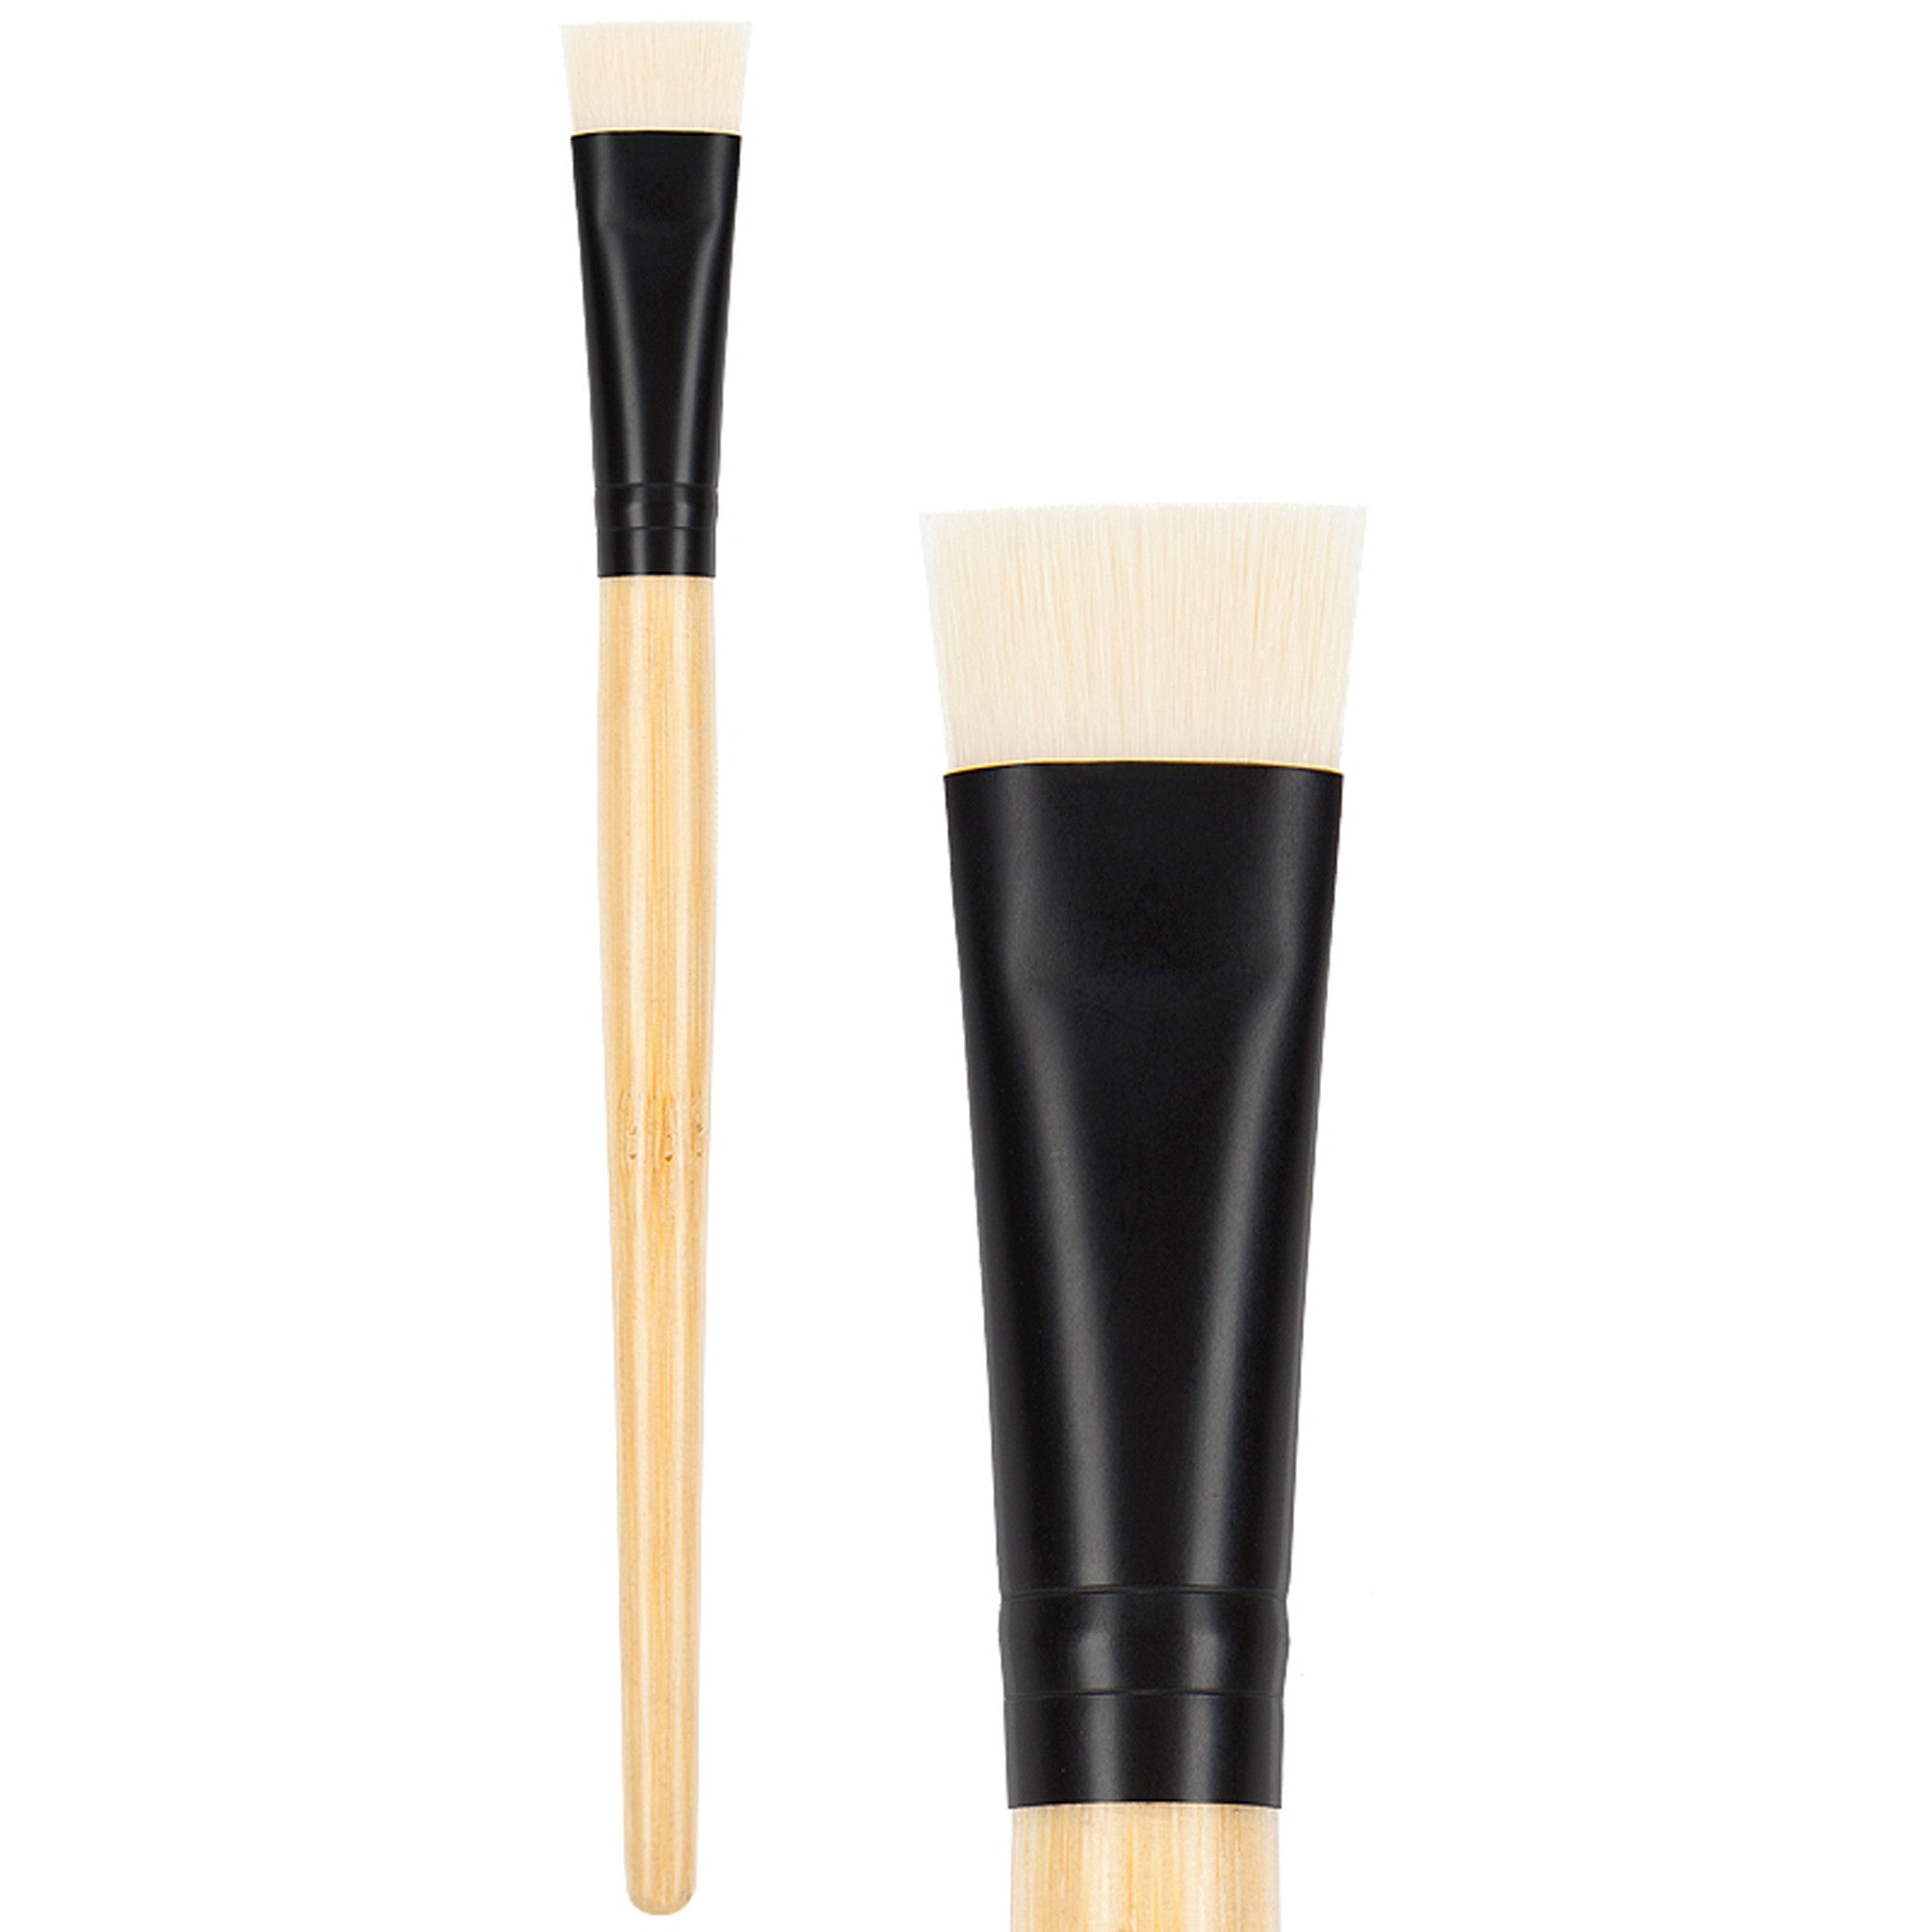 Coastal Scents coupon: Elite Flat Tipped Shadow Brush